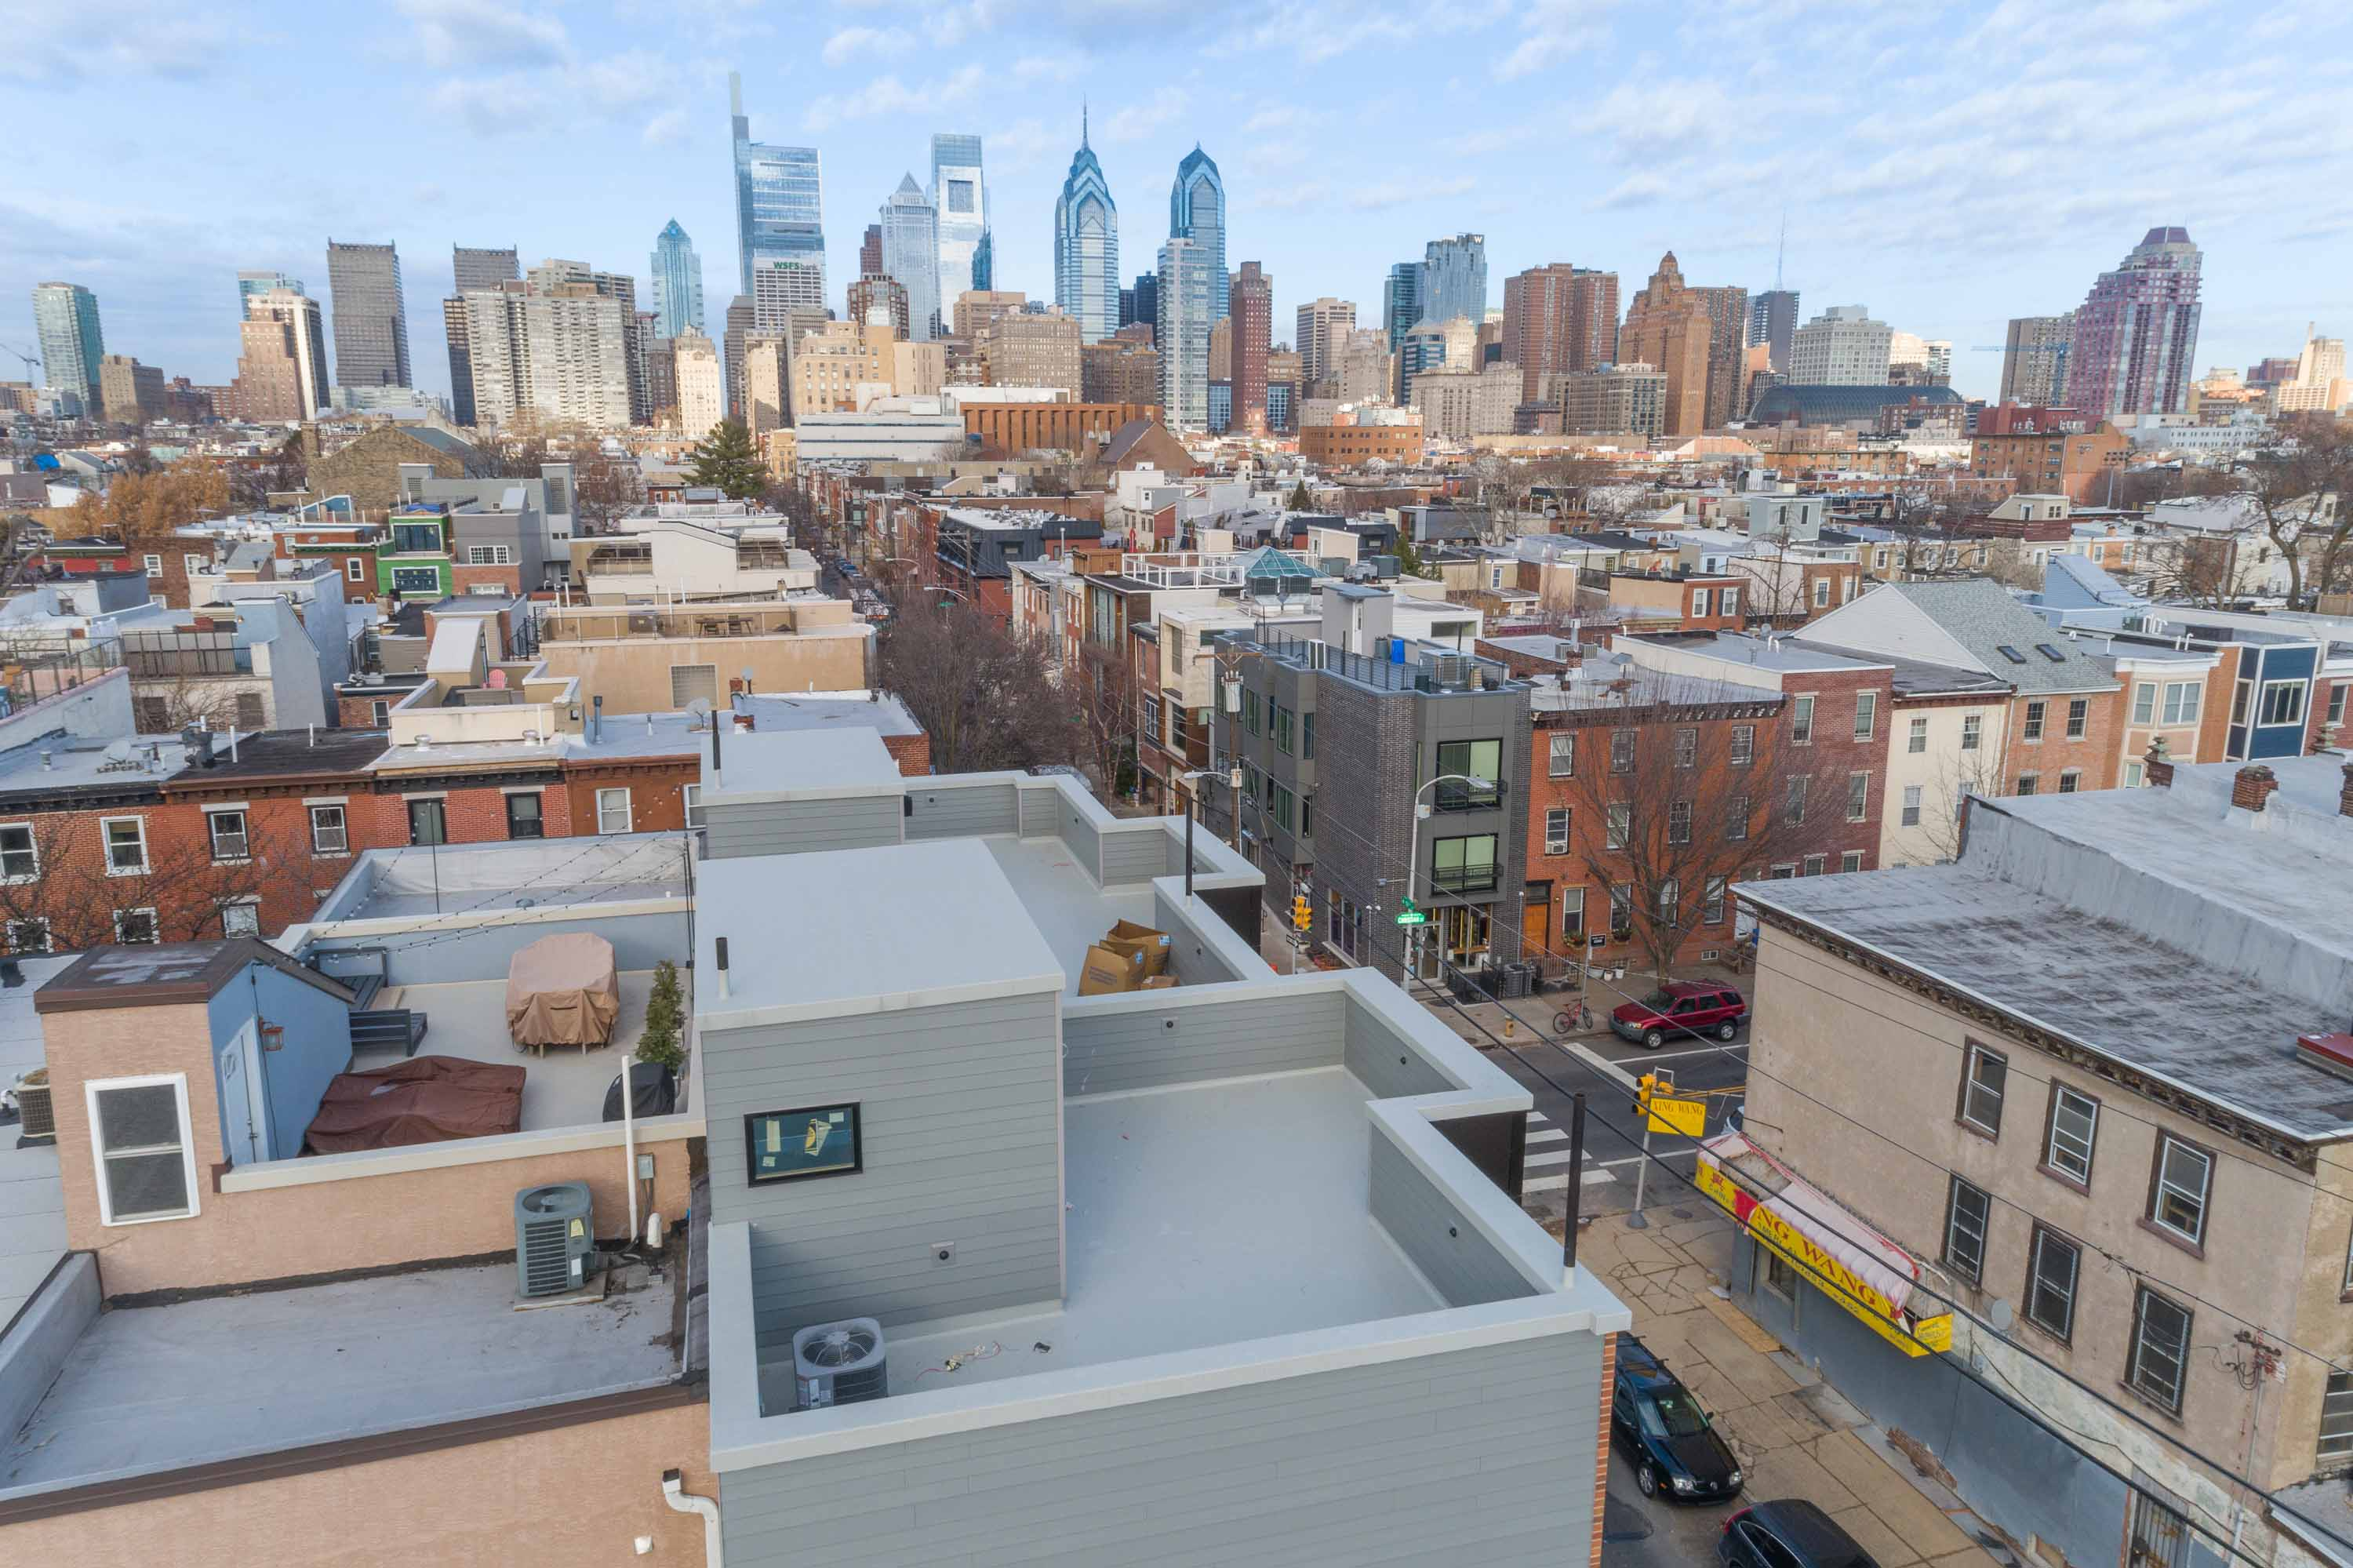 1900 CHRISTIAN ST 2020-01 AERIAL WEFILMPHILLY-0364